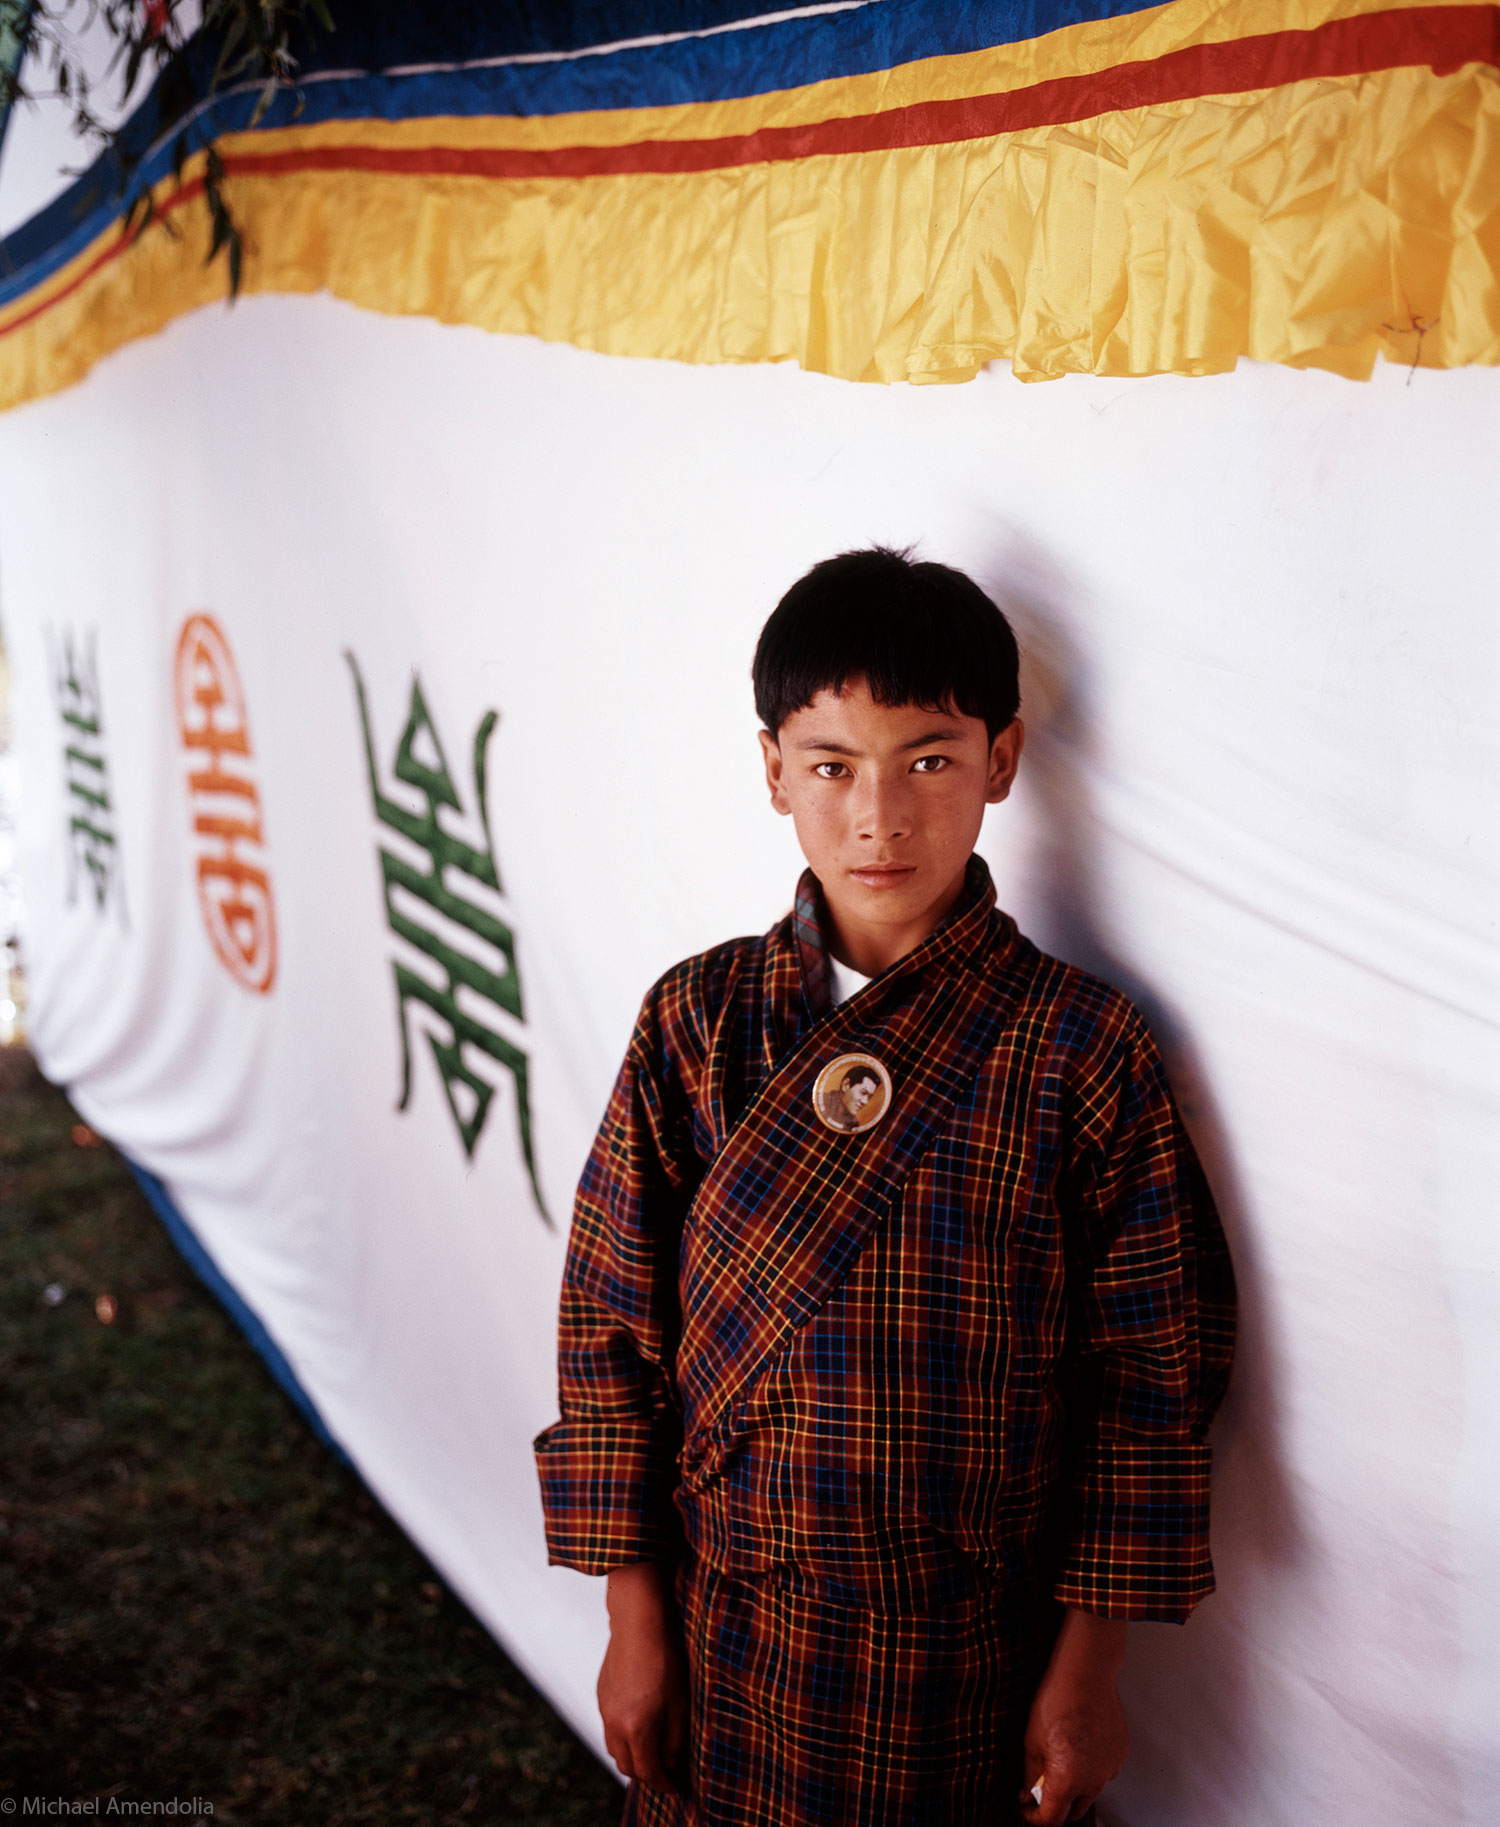 Ceremony for the current King of Bhutan